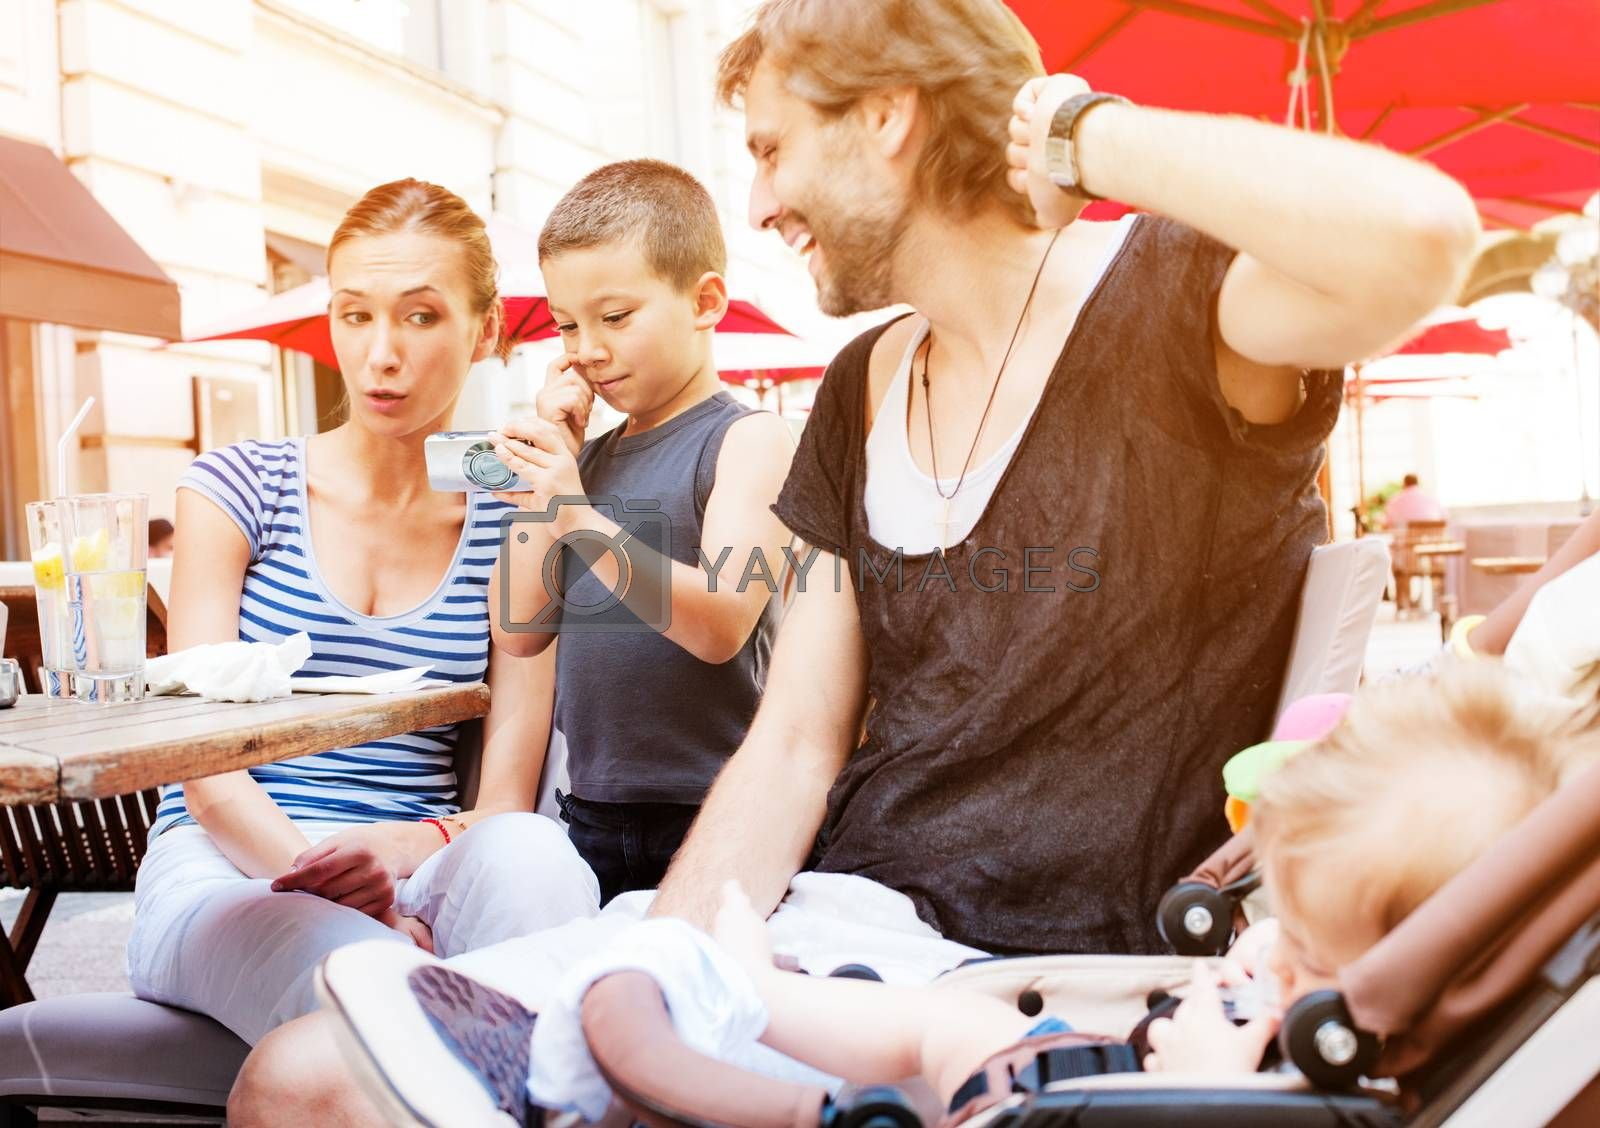 A young boy is showing pictures on camera to his parents in a warm summer day at an outdoor cafe.